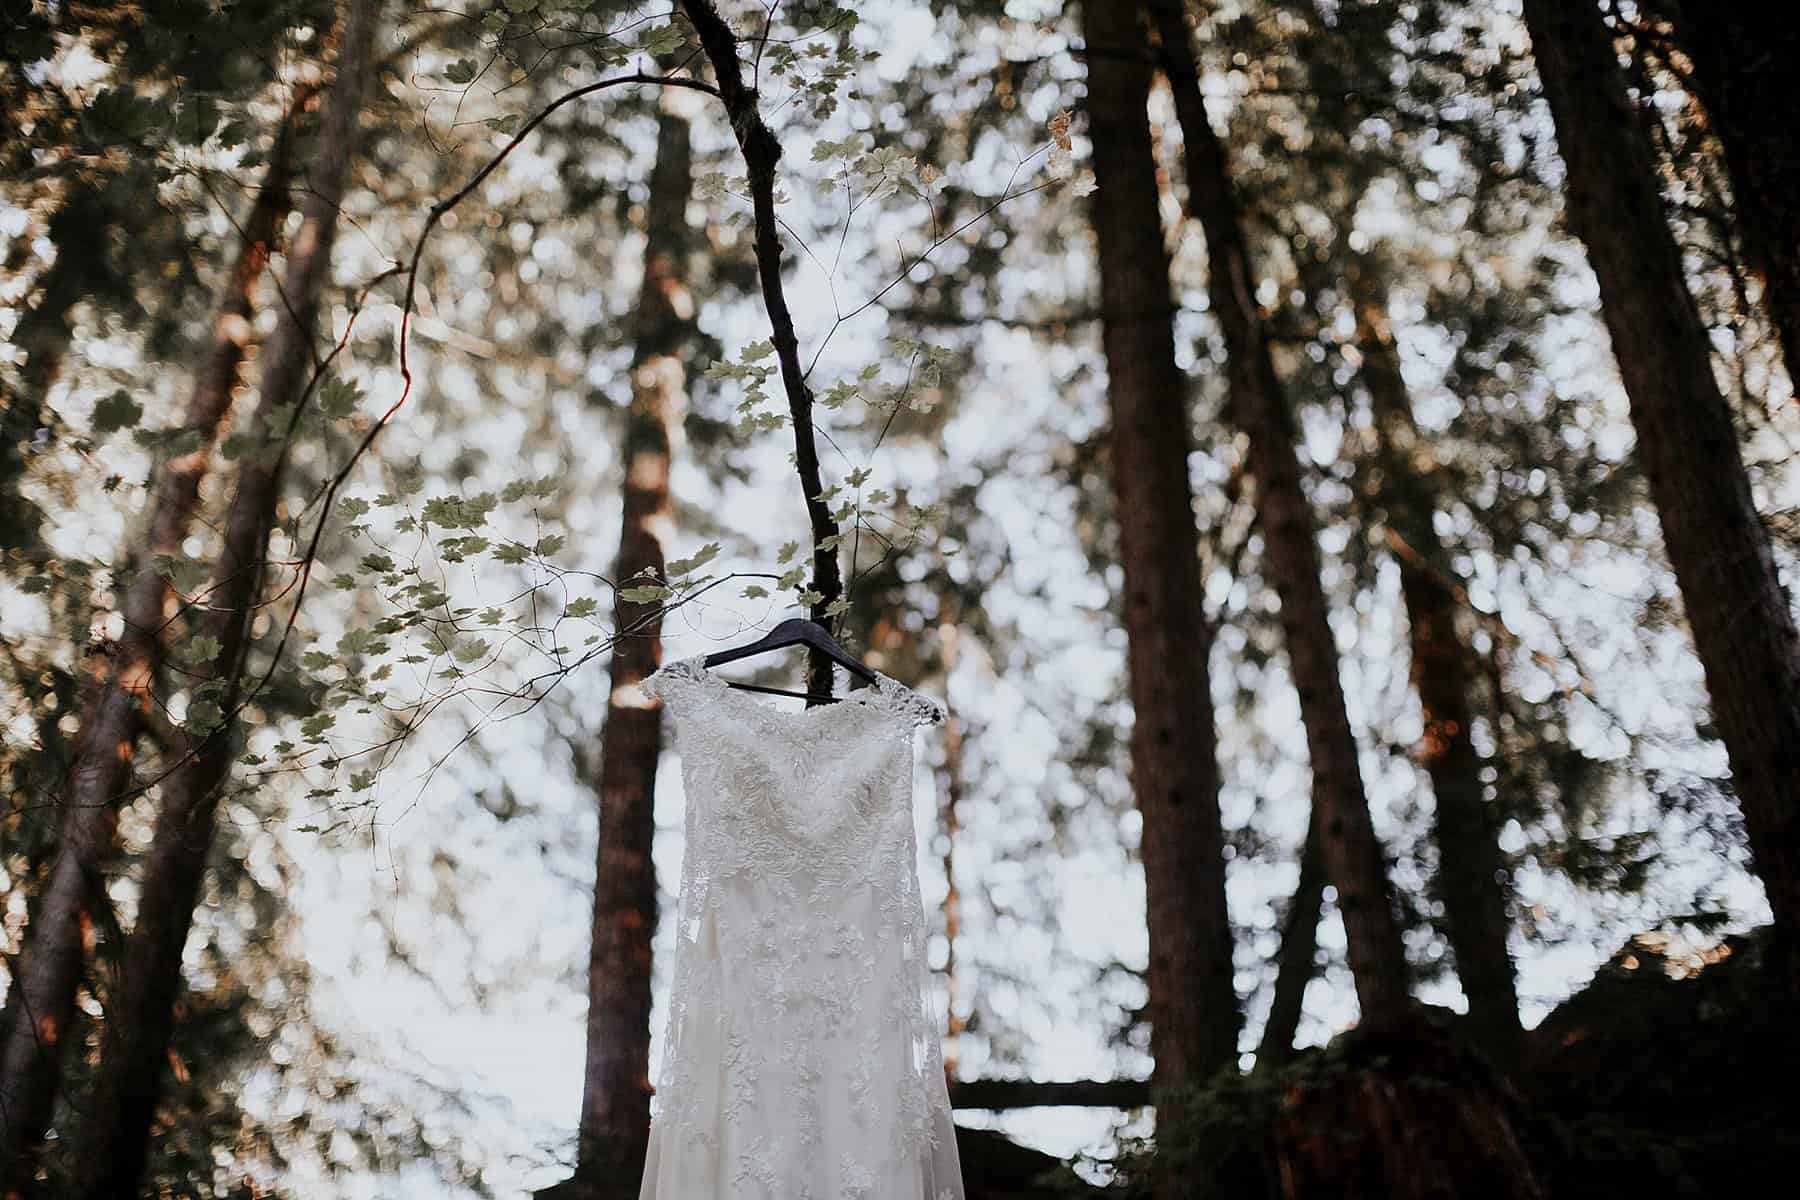 bend-central-oregon-waterfall-adventure-wedding-elopement-000z